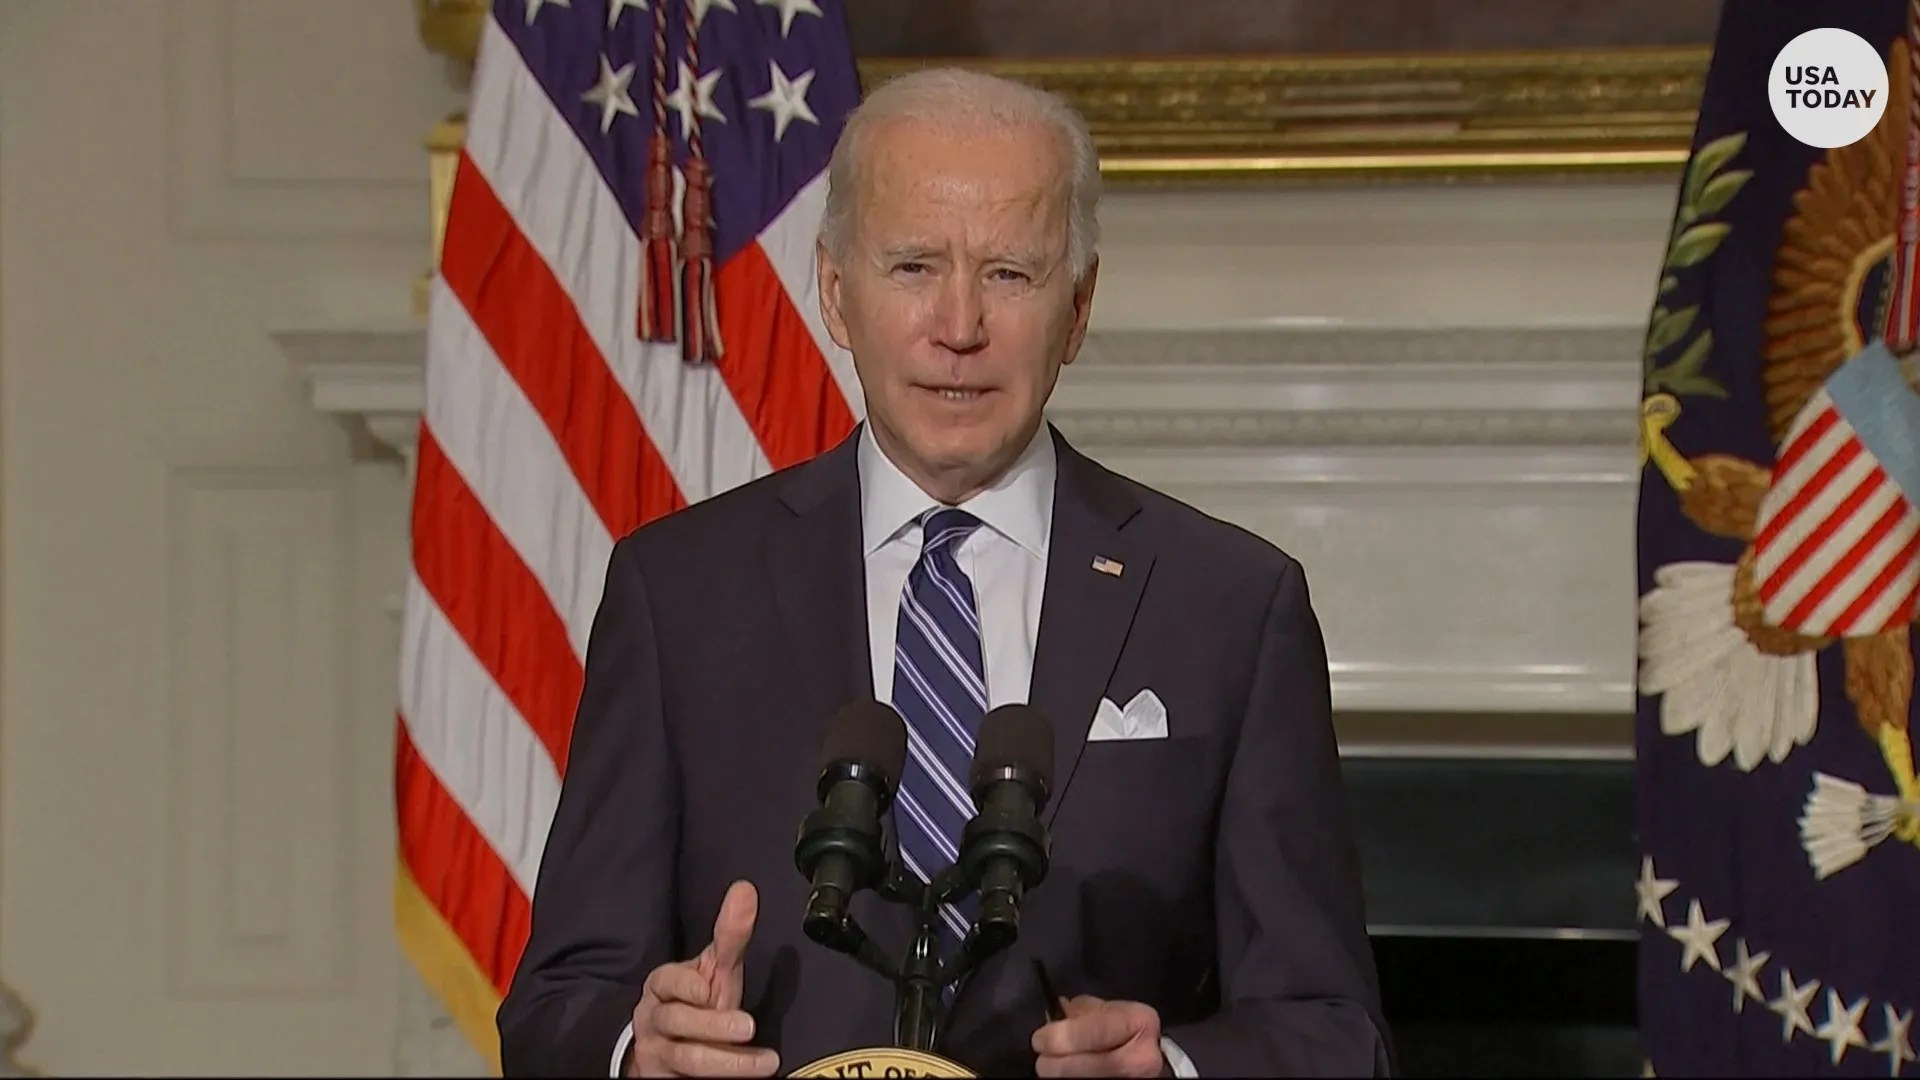 President Biden has signed executive actions related to addressing climate change, including making climate change a national security concern.